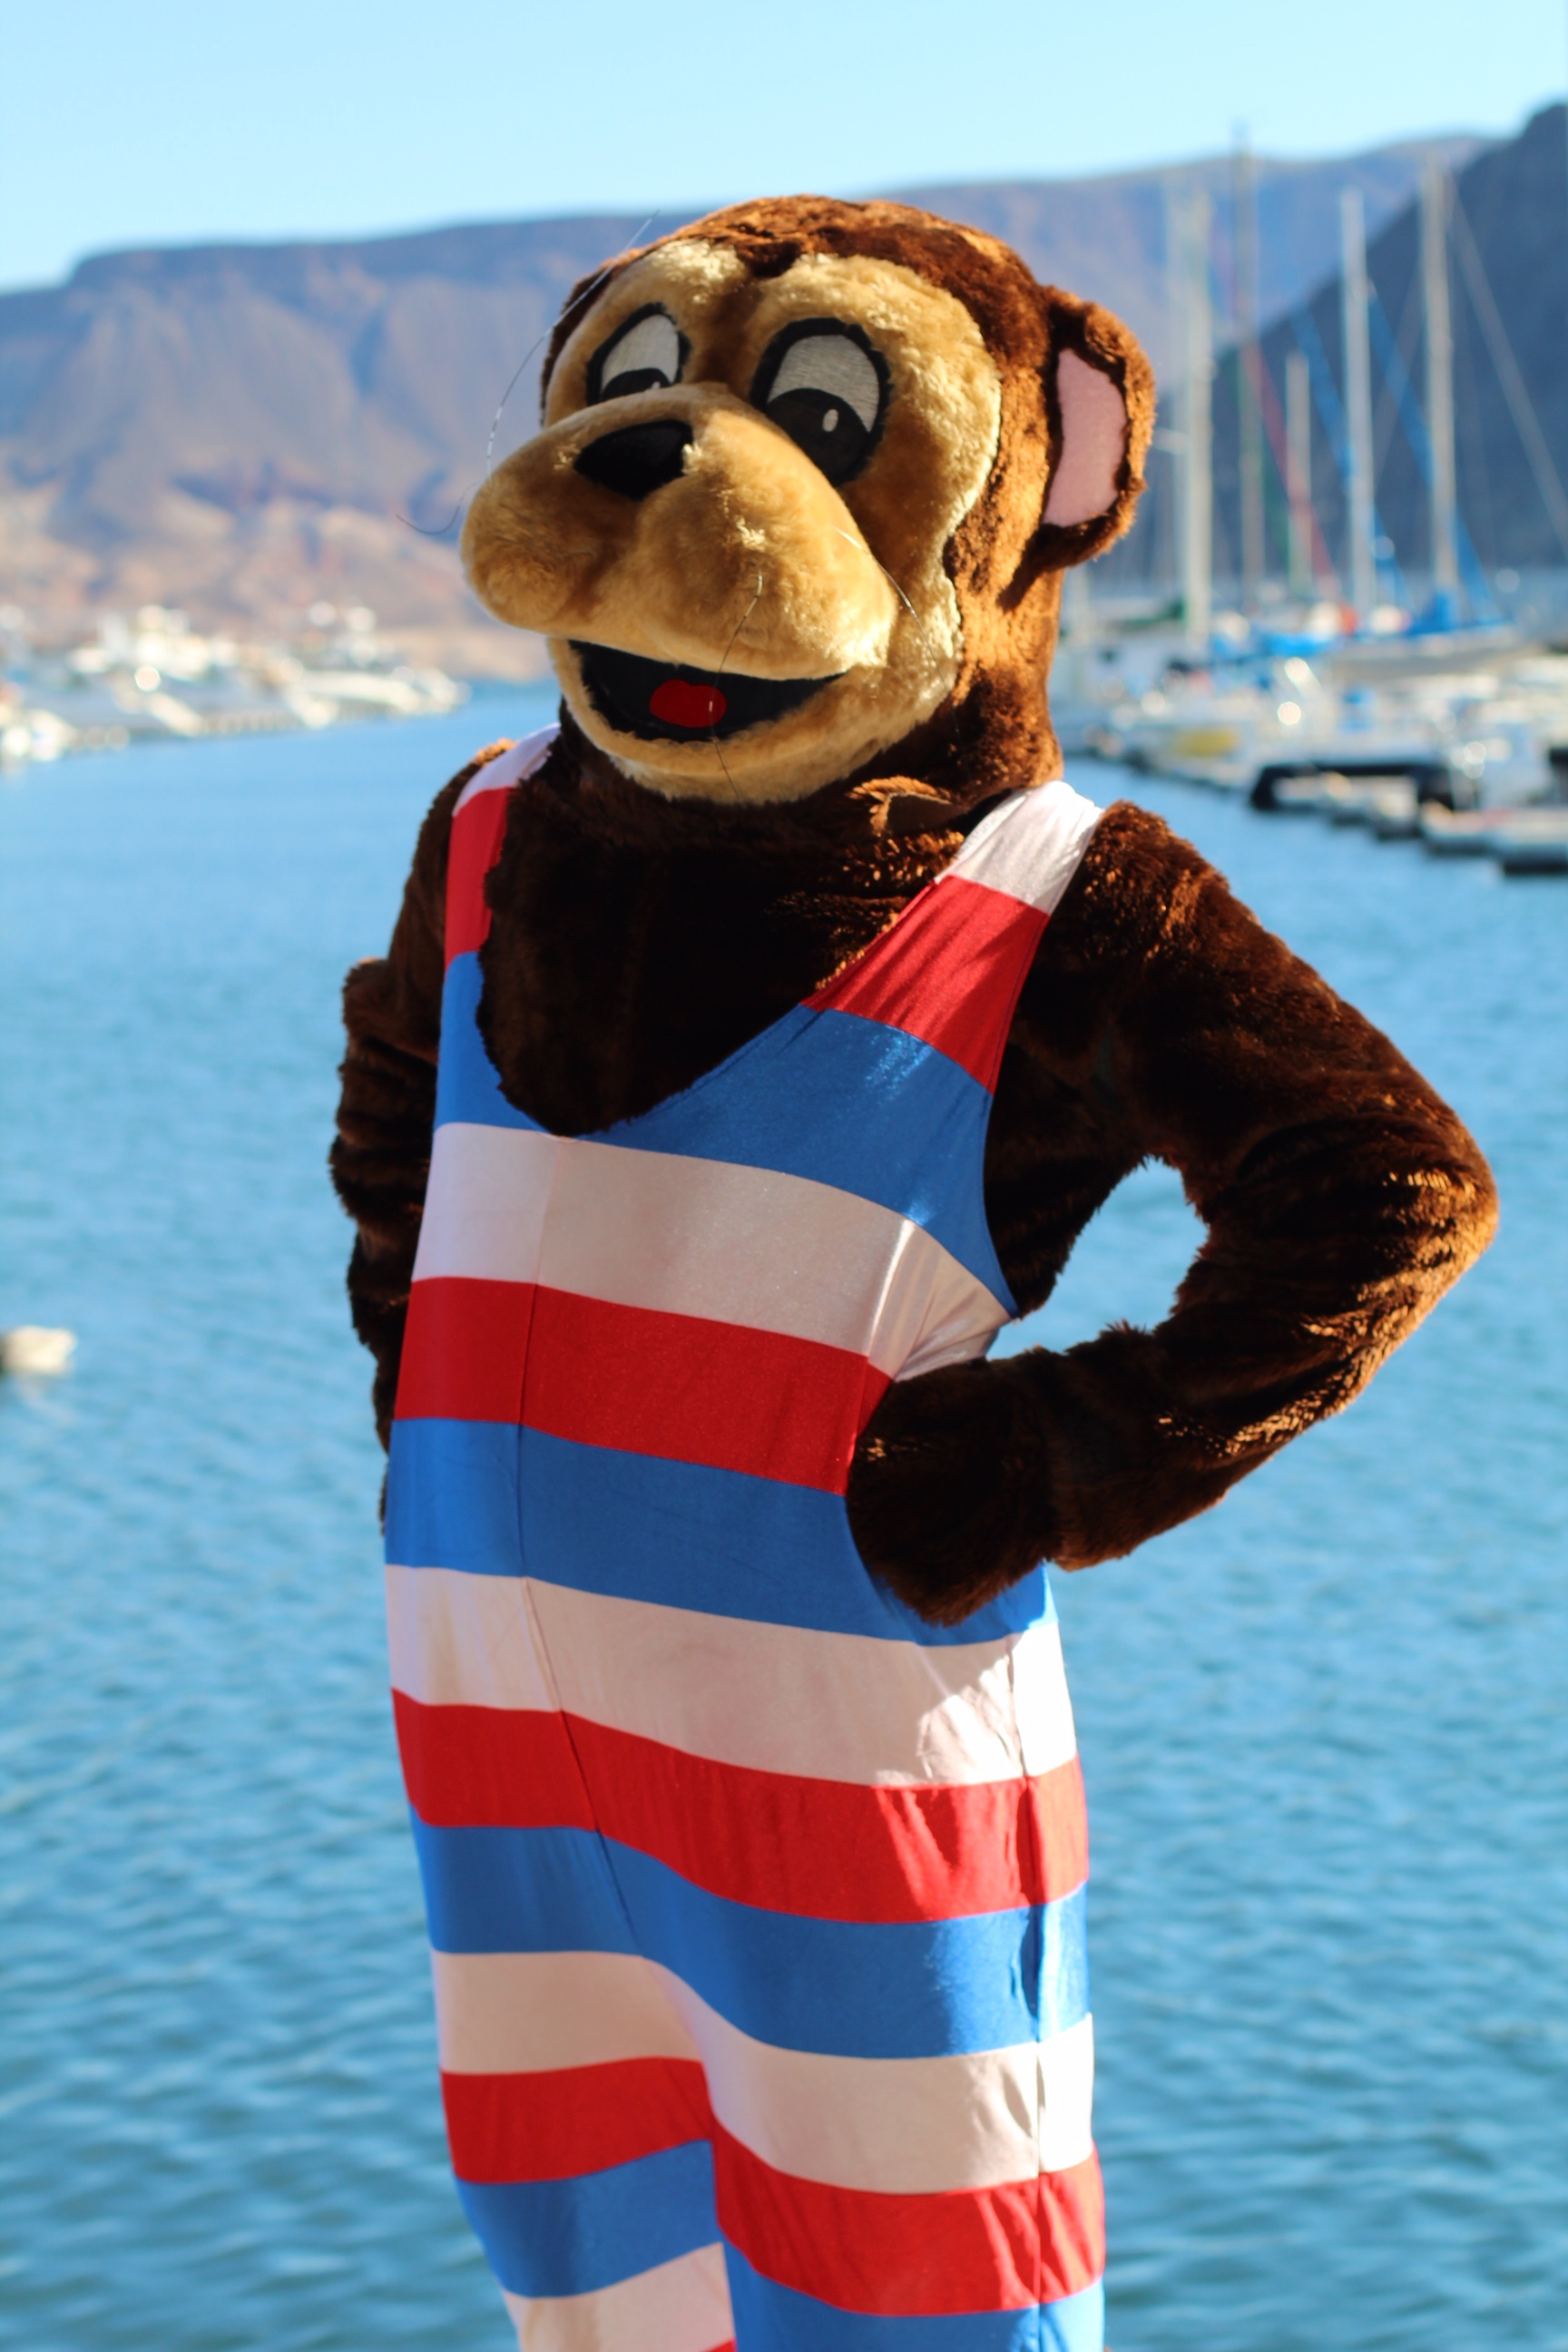 Otto the Otter at the C.A.S.T. for Kids event at Lake Mead